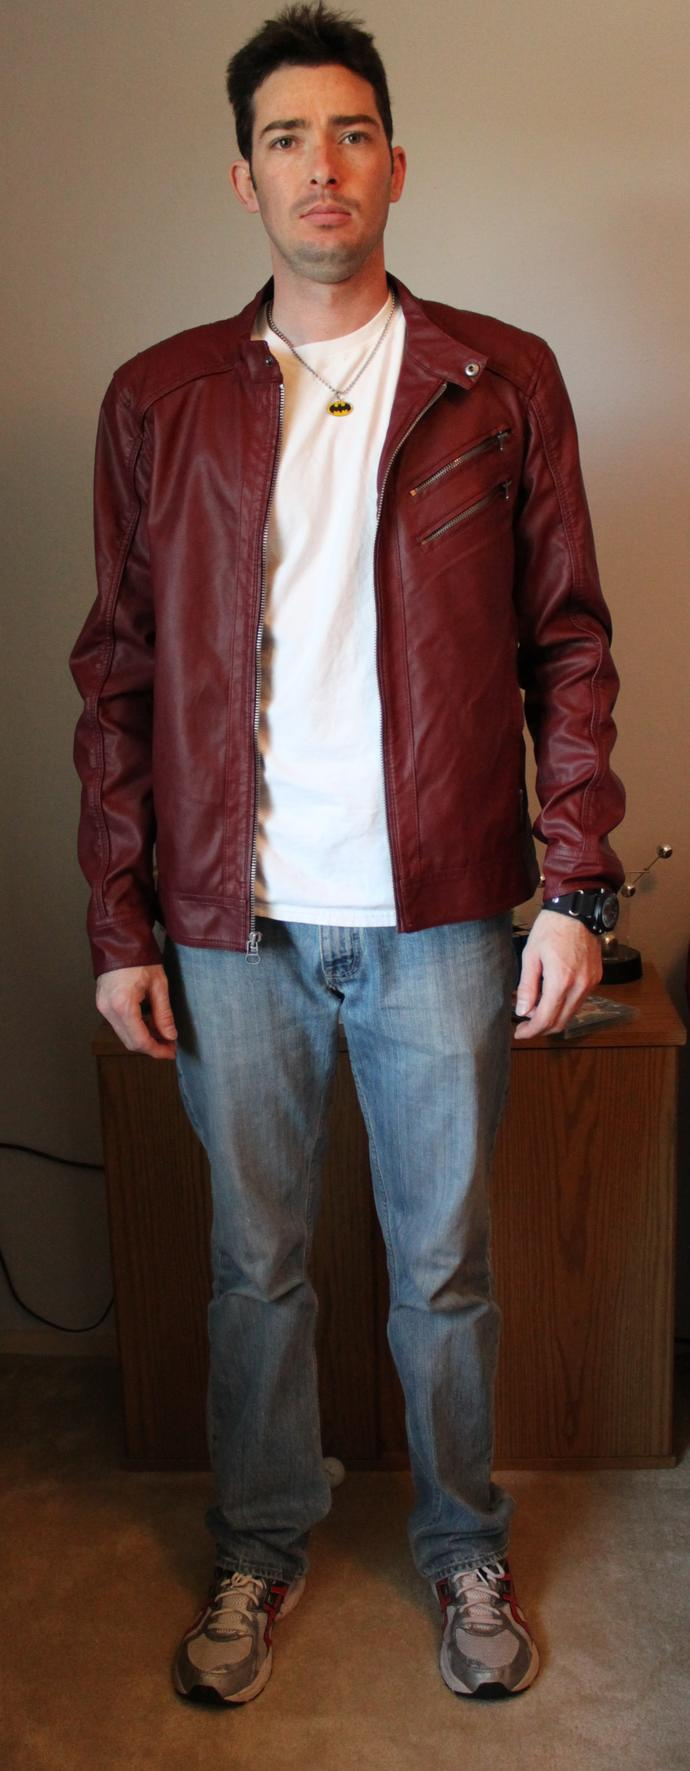 Looking for a shoe/boot to go with this red leather jacket. What do you think?  I should go with black, right?